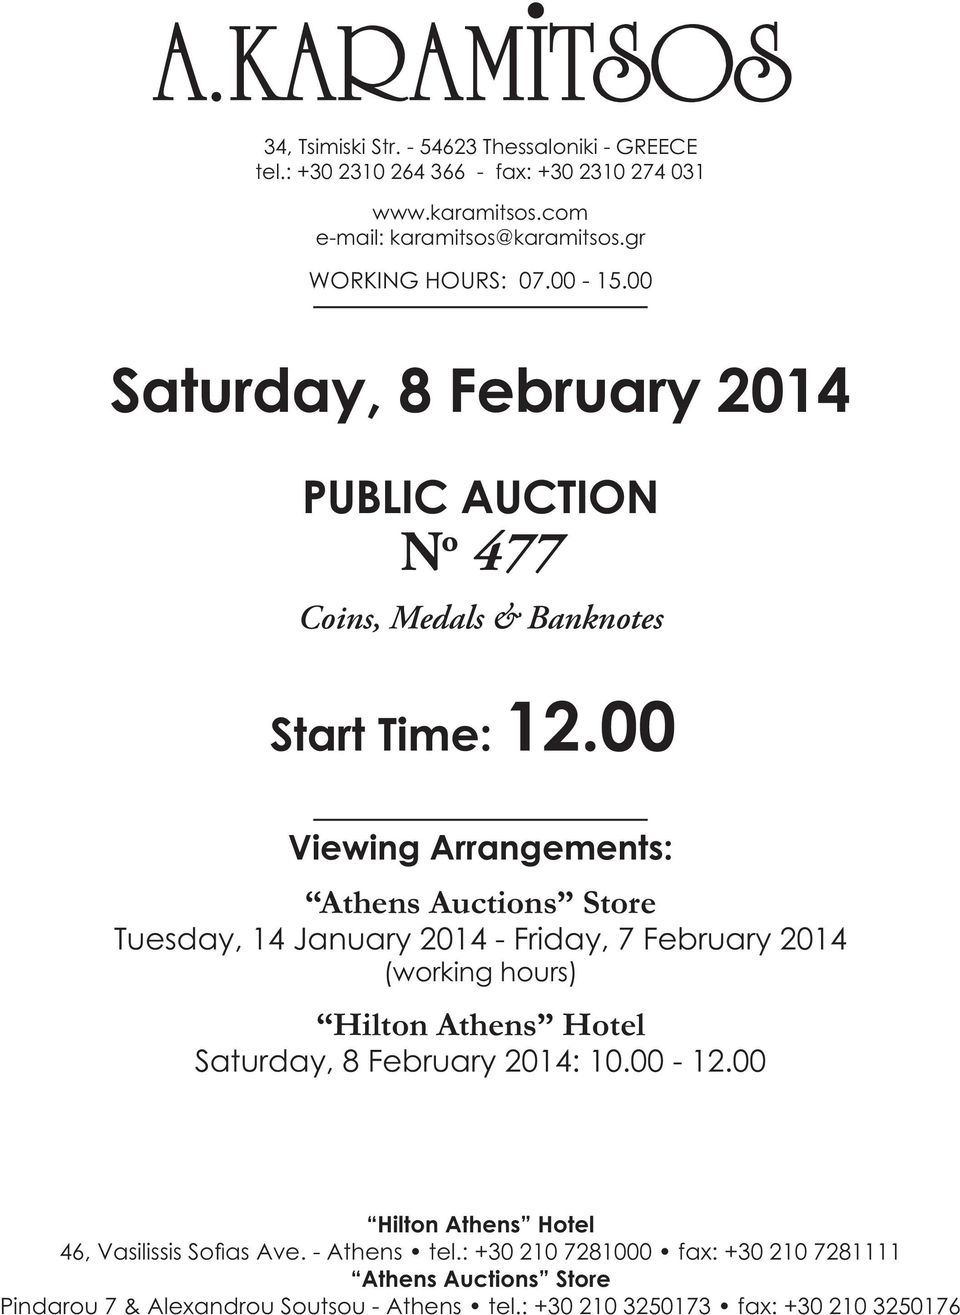 00 Viewing Arrangements: Athens Auctions Store Tuesday, 14 January 2014 - Friday, 7 February 2014 (working hours) Hilton Athens Hotel Saturday, 8 February 2014: 10.